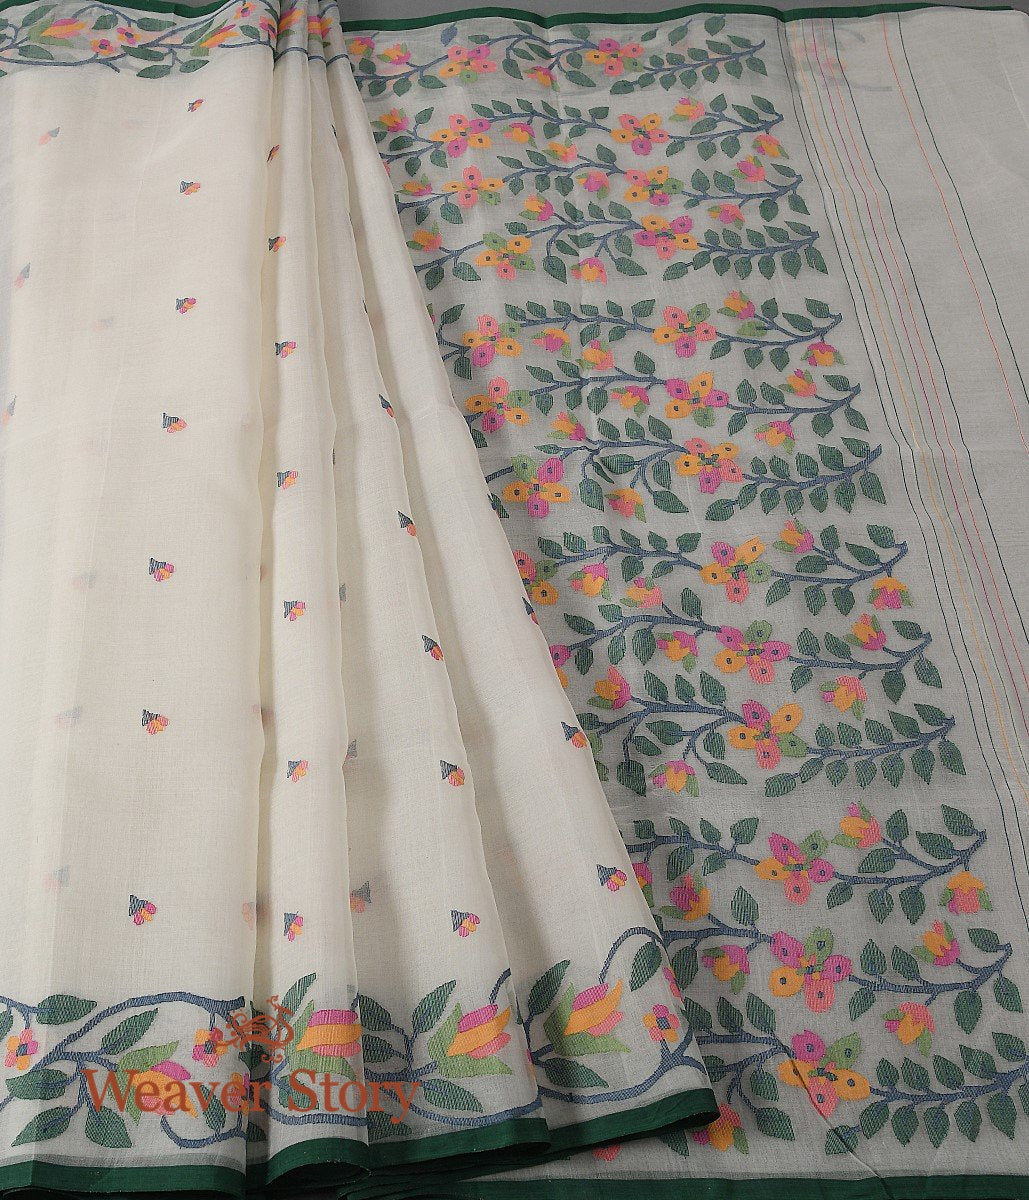 Handwoven Offwhite Muslin Dhakai Jamdani Saree with Floral Border and Pallu